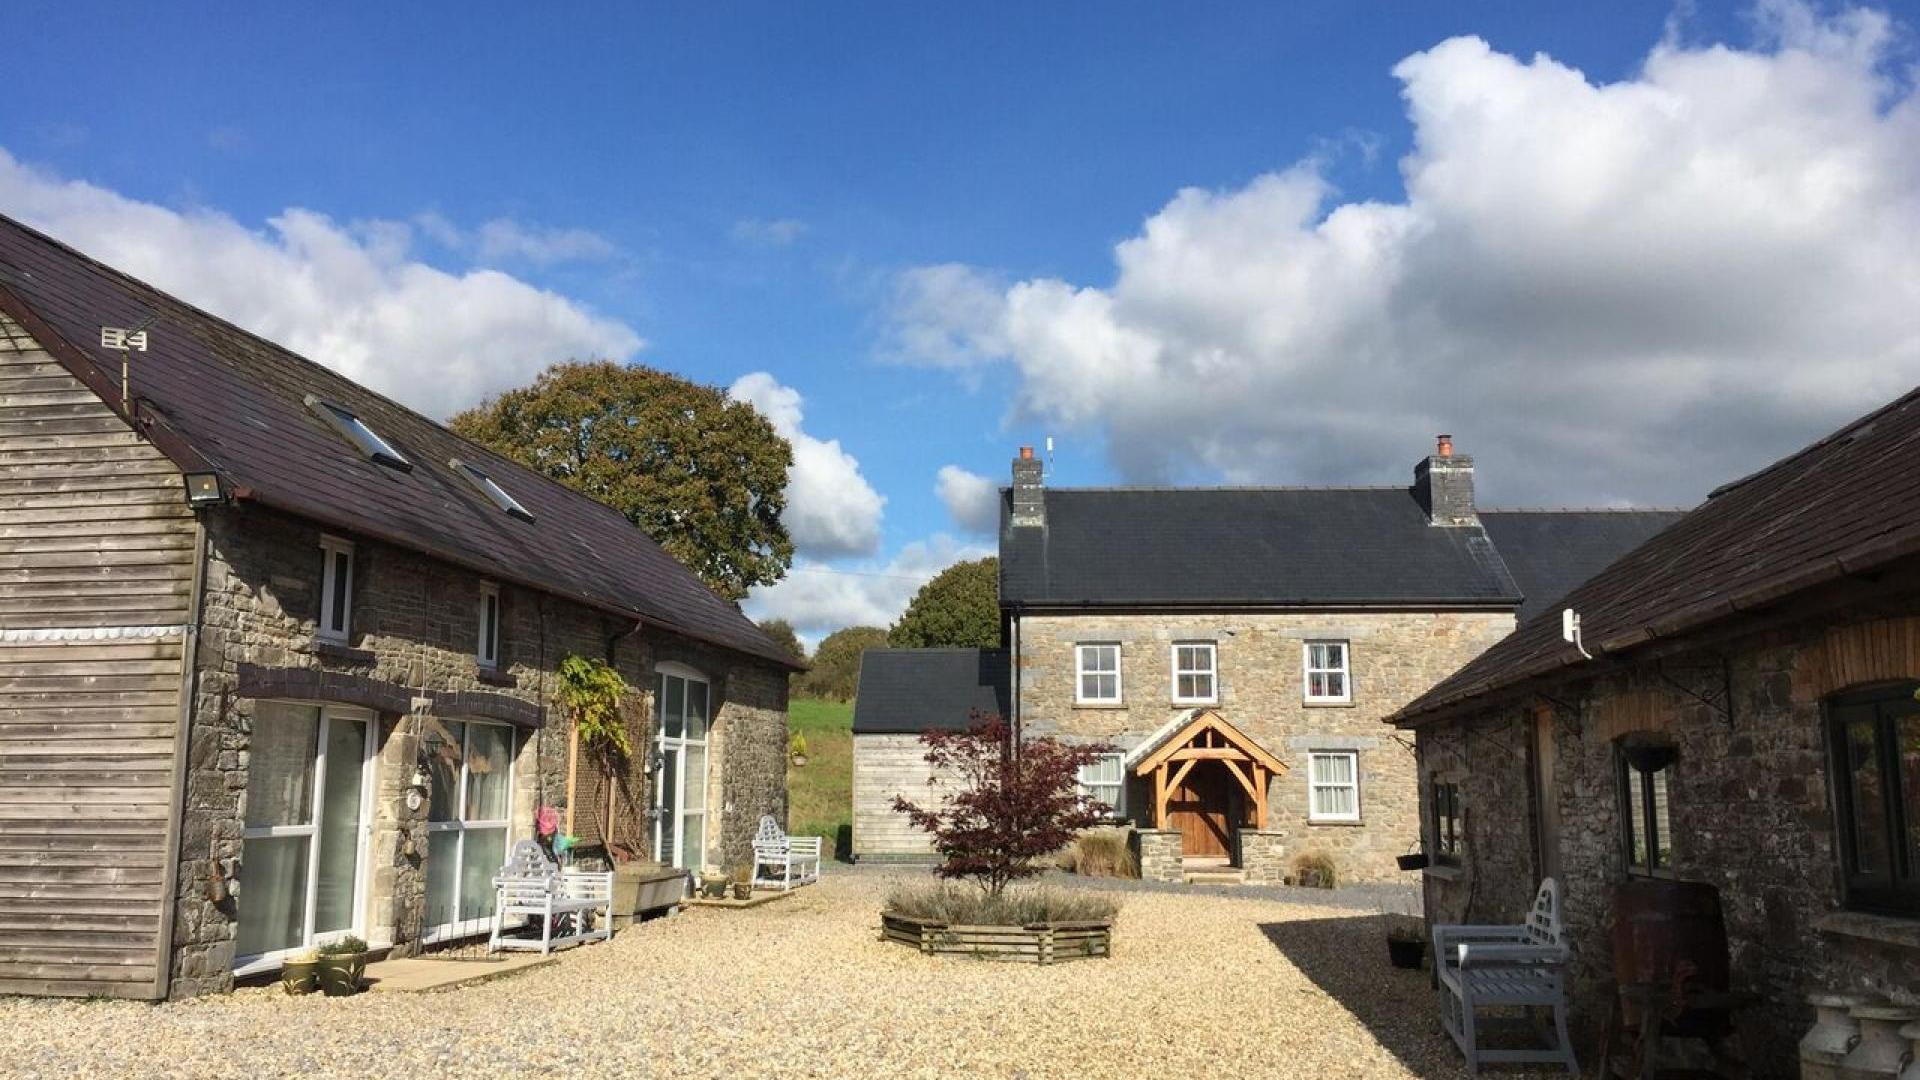 3 Bedroom Cottage/shared grounds in Wales, United Kingdom